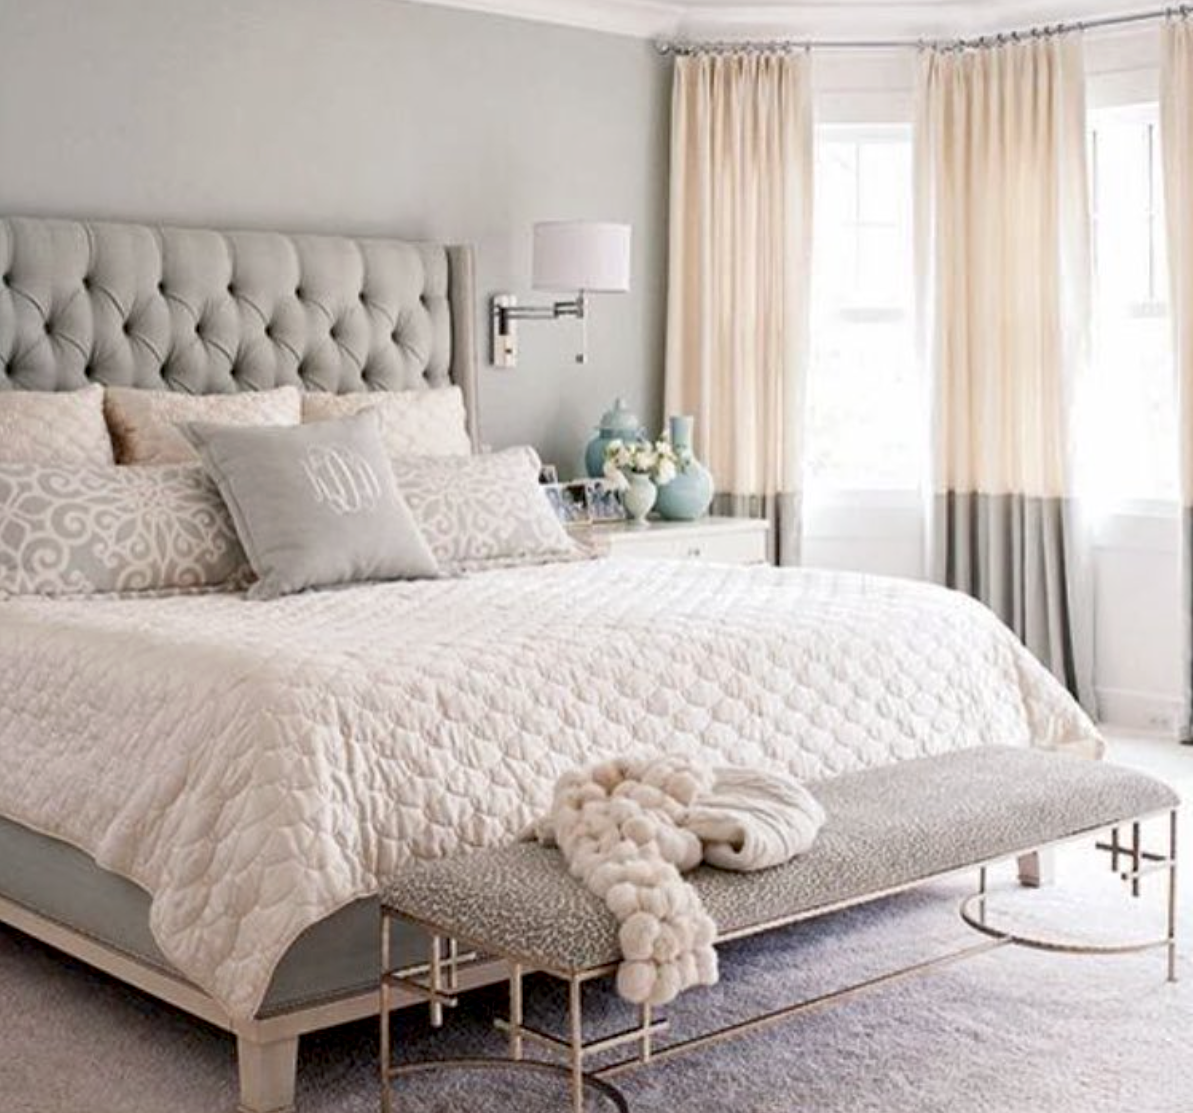 White bedroom ideas for women - Bedroom Decor Ideas Transitional Style Light Grey Cream And White Color Palette Tufted Headboard Bench Drum Wall Sconces Above Side Tables And Full